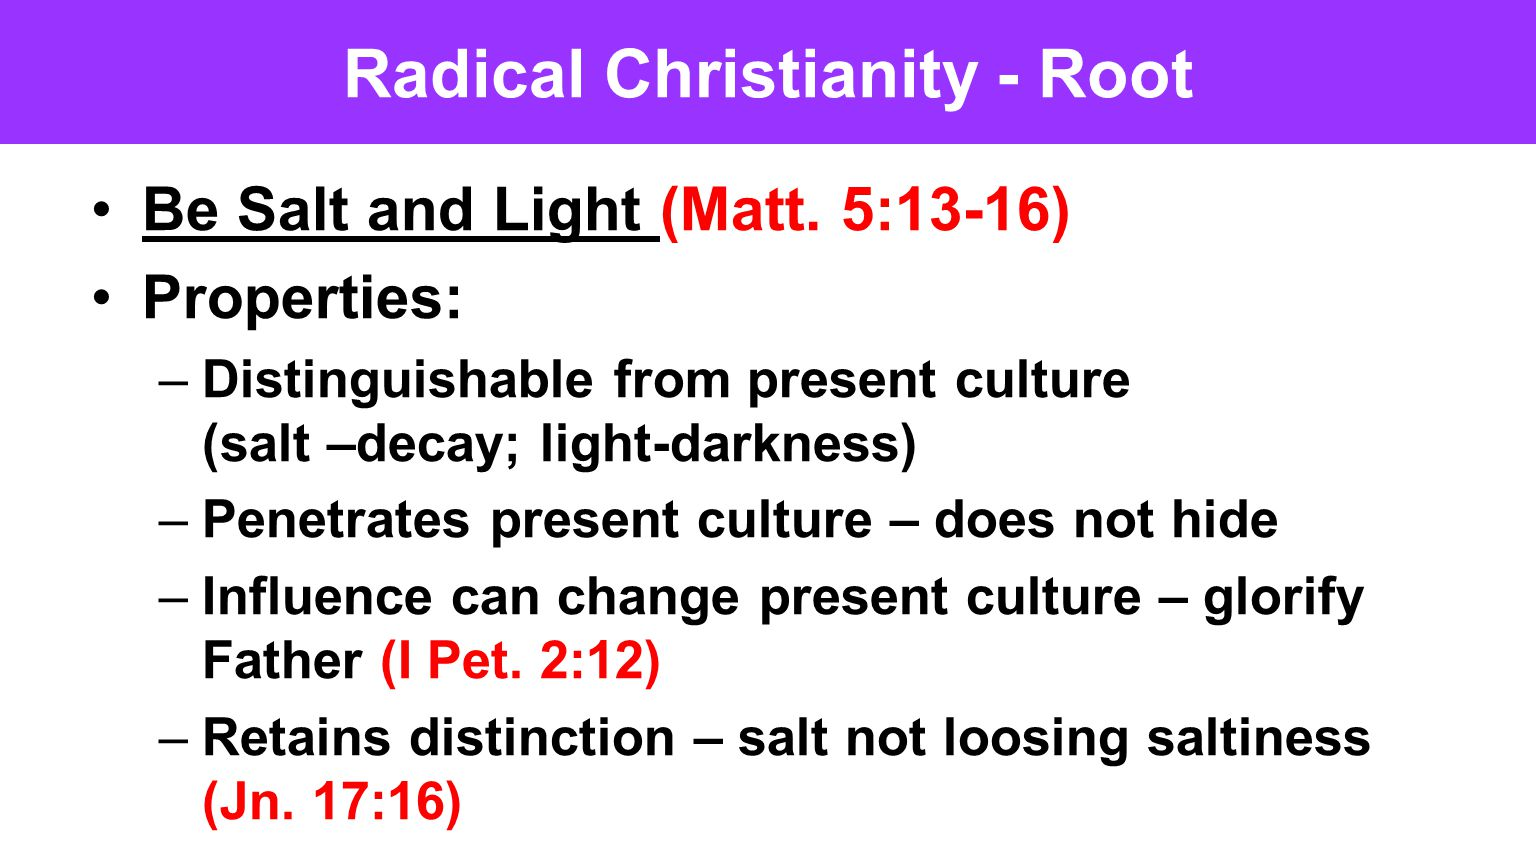 Radical Christianity - Root Be Salt and Light (Matt. 5:13-16) Properties: –Distinguishable from present culture (salt –decay; light-darkness) –Penetra